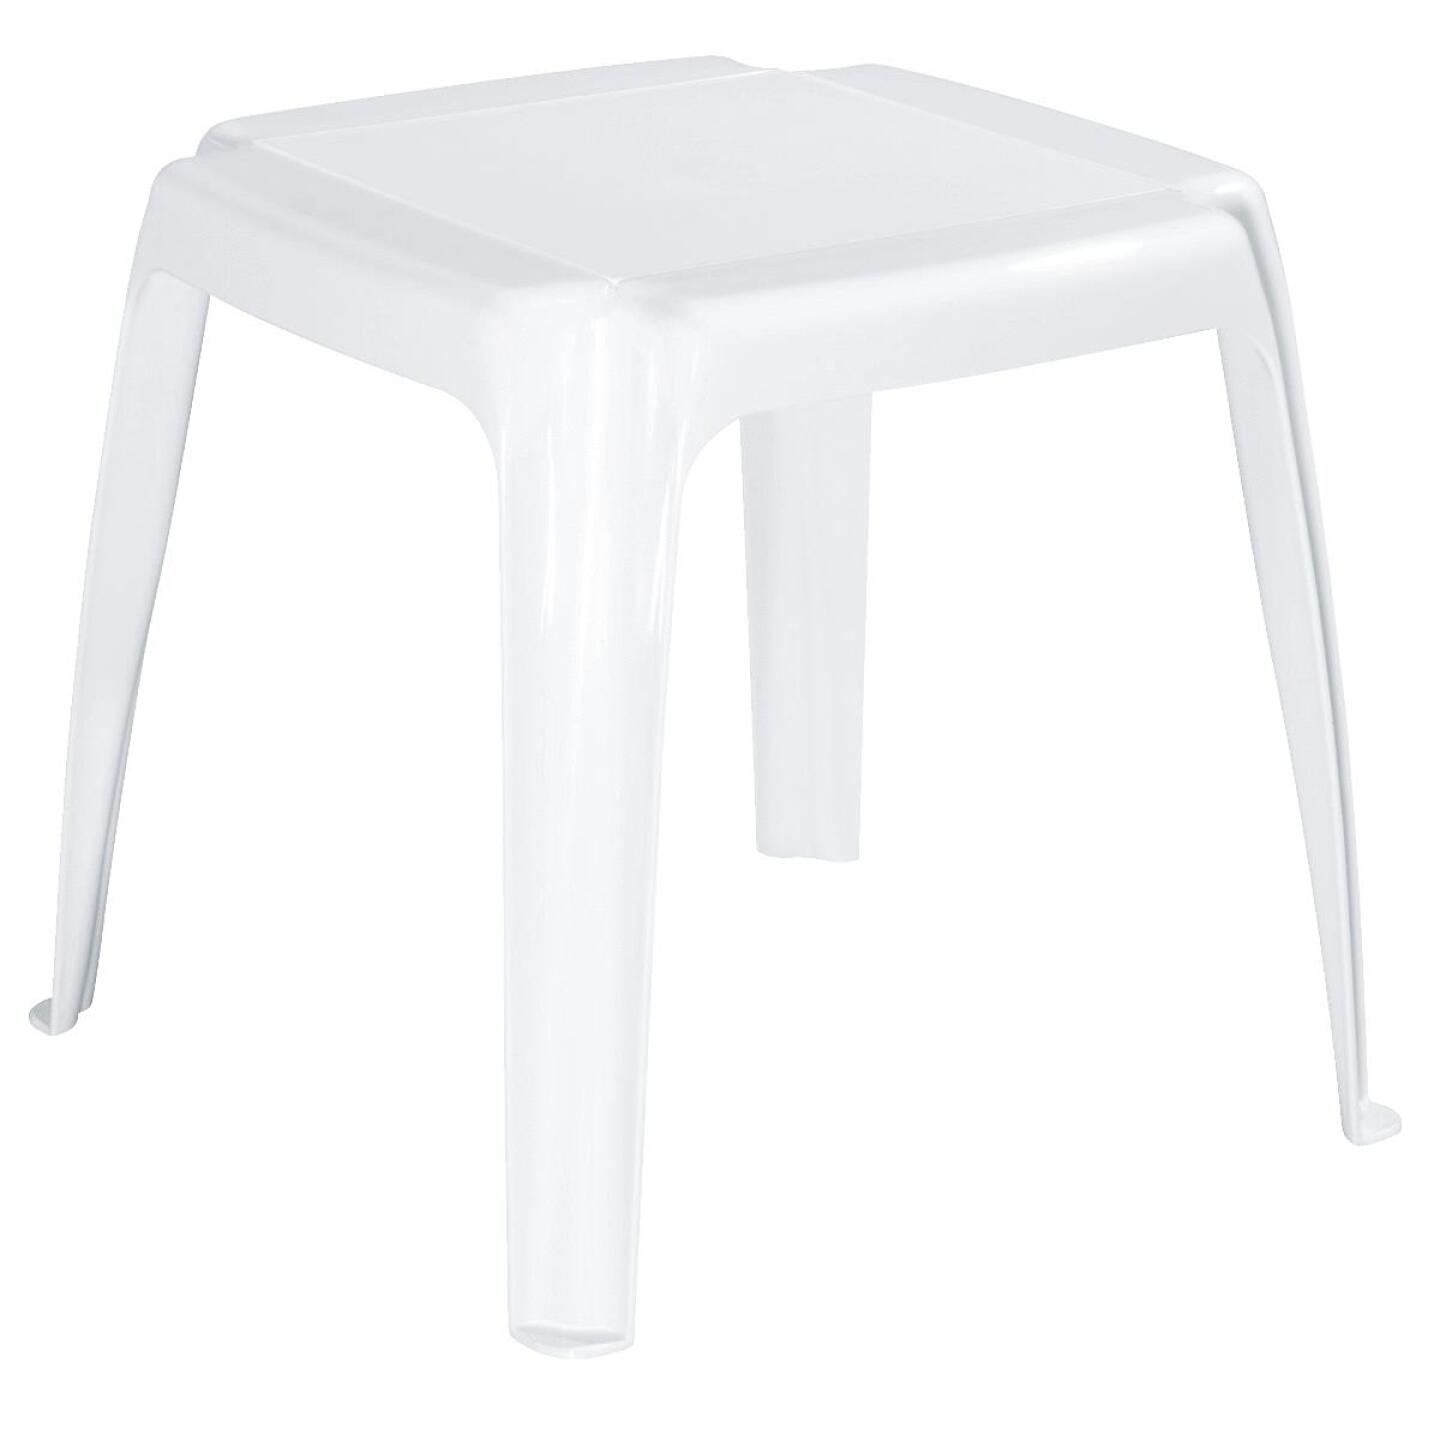 Adams White 16 In. Square Resin Side Table Image 1